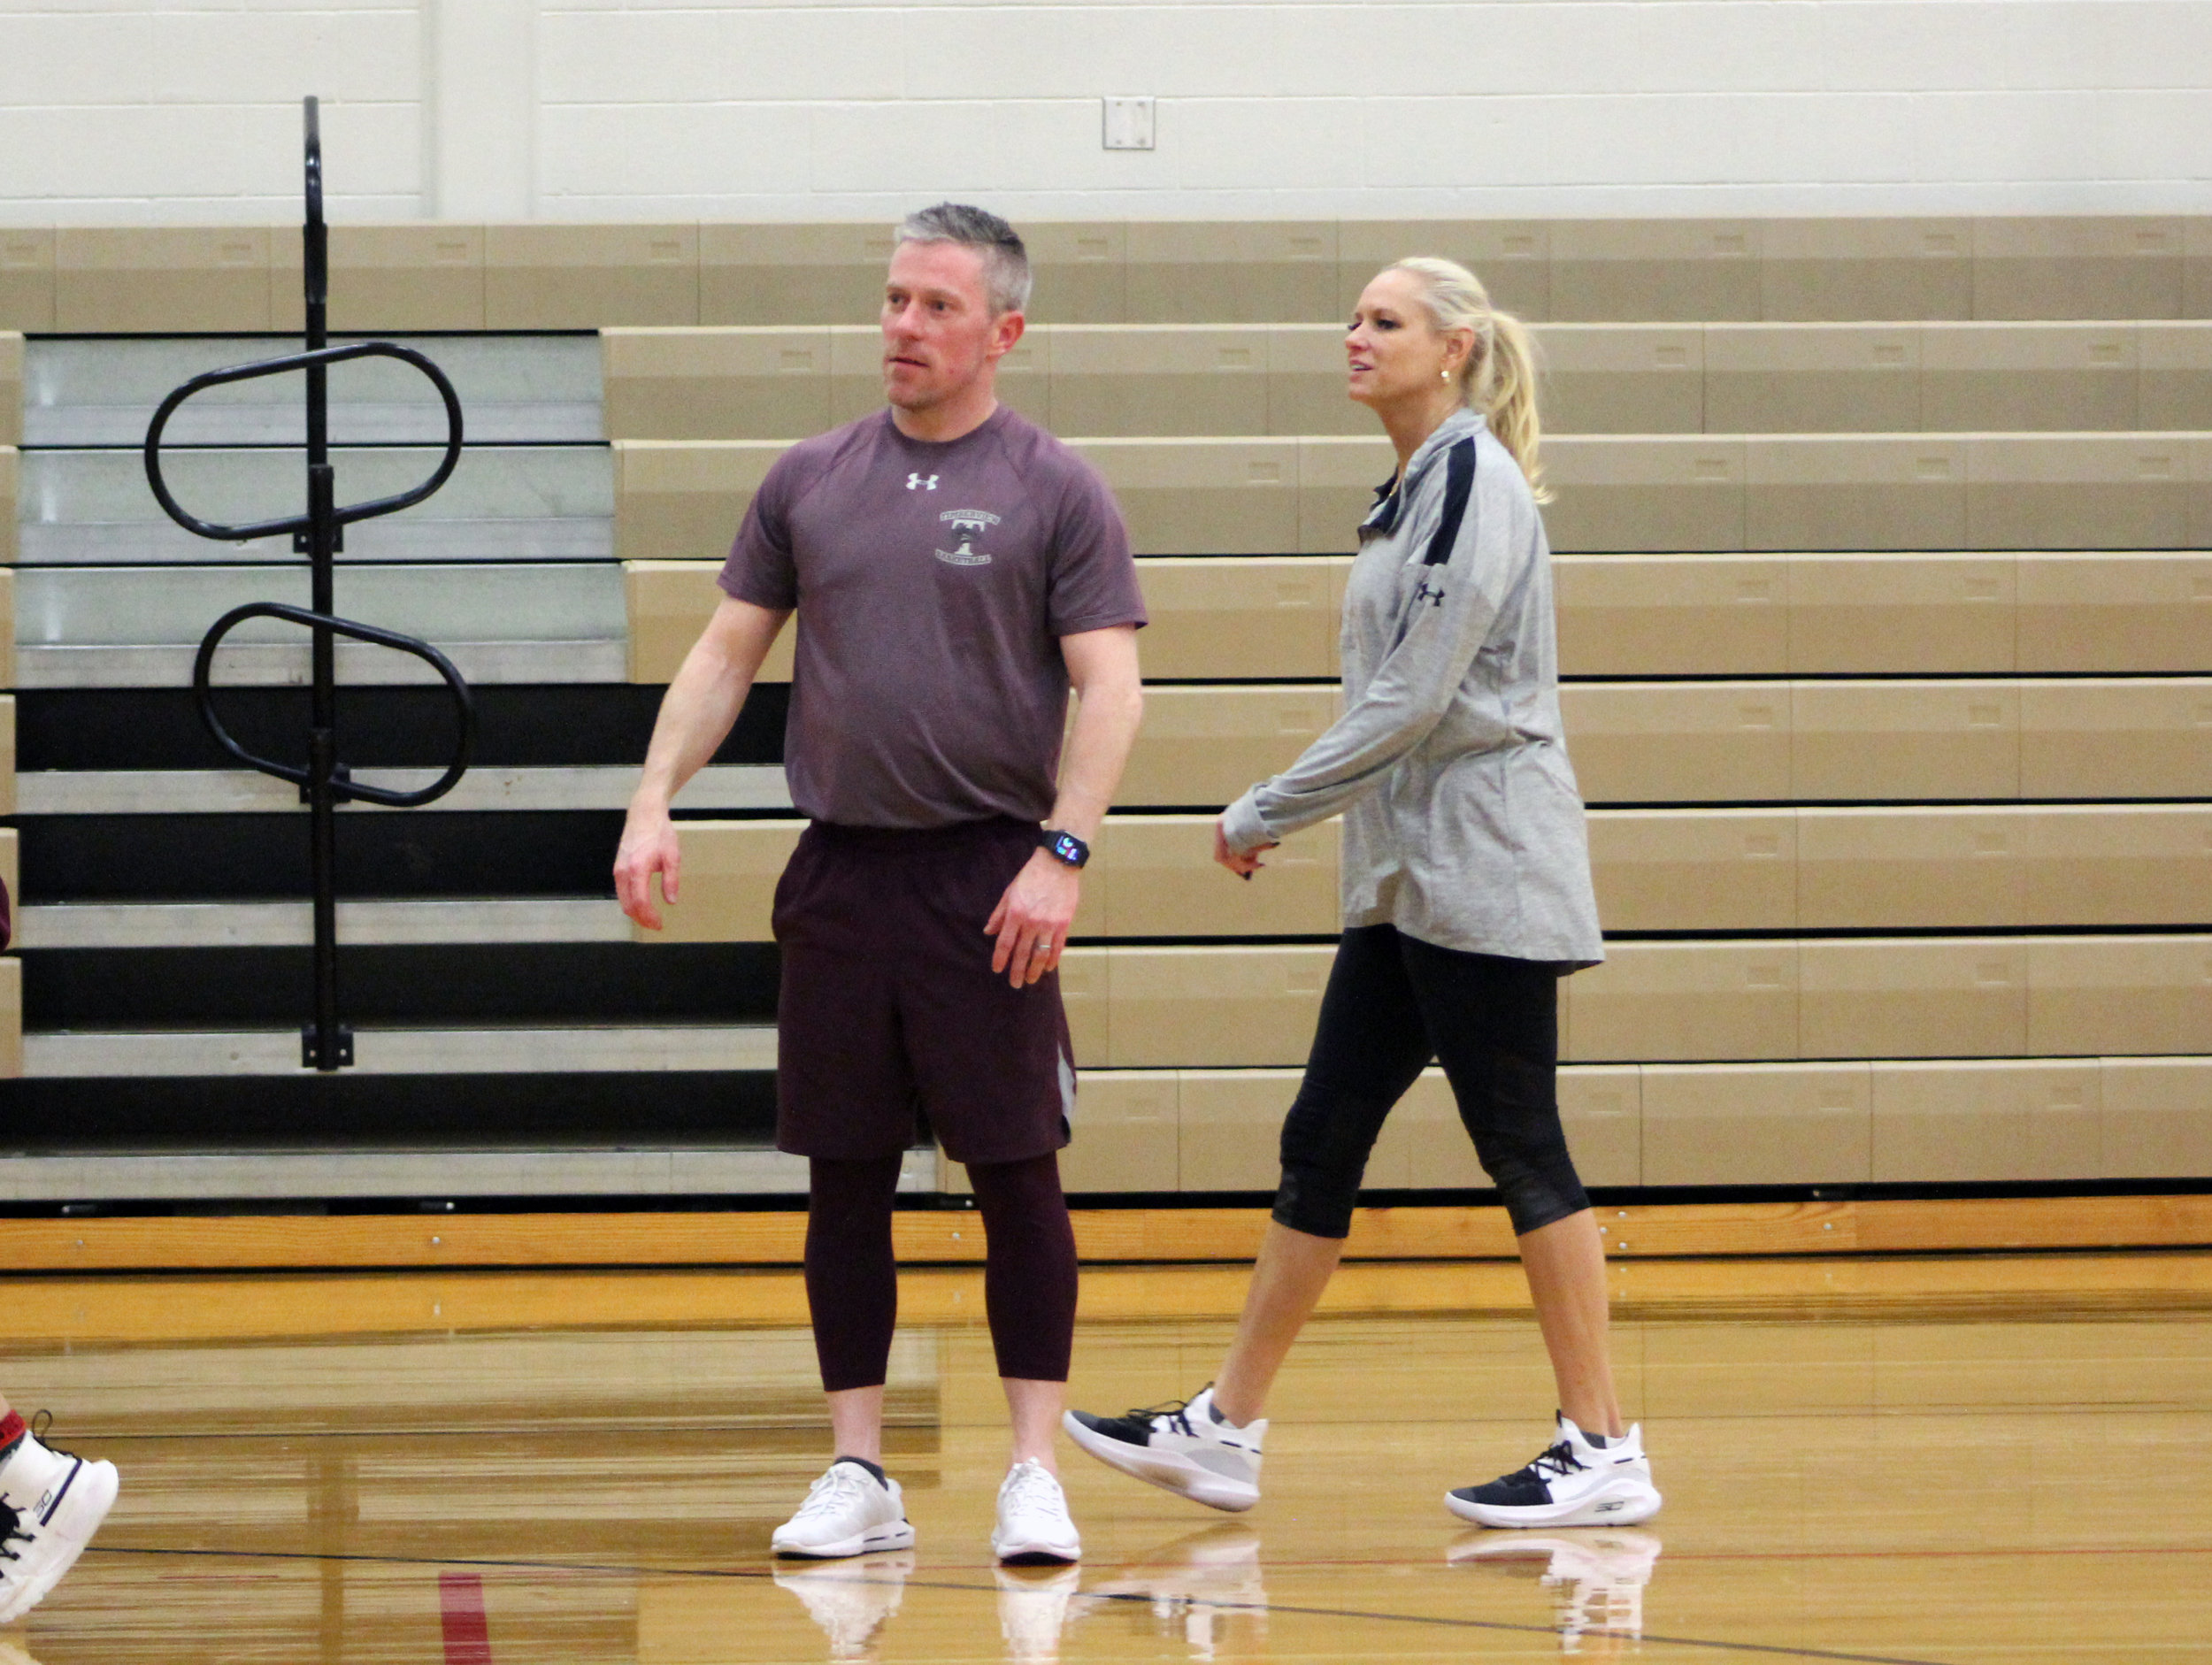 Coach Kit Martin (right) looks on during practice with assistant coach Todd Monsey after playoff win.